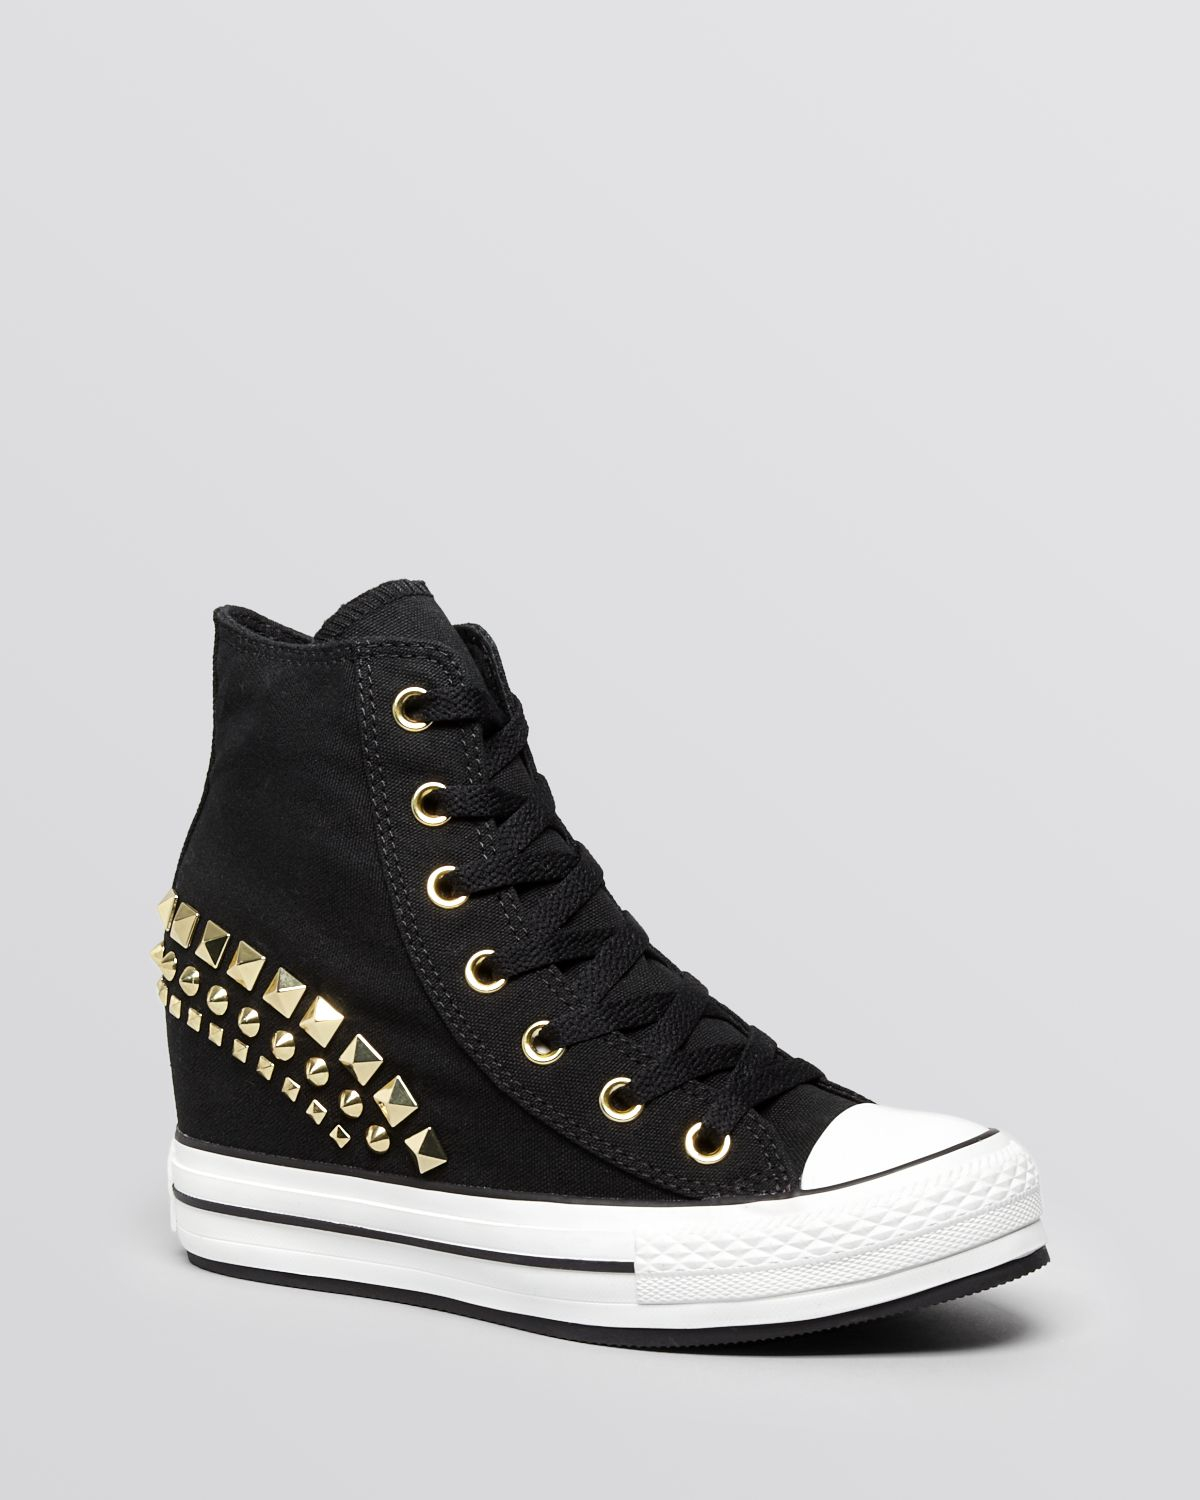 Lyst - Converse Lace Up High Top Wedge Sneakers All Star Platform ... 26c8173759